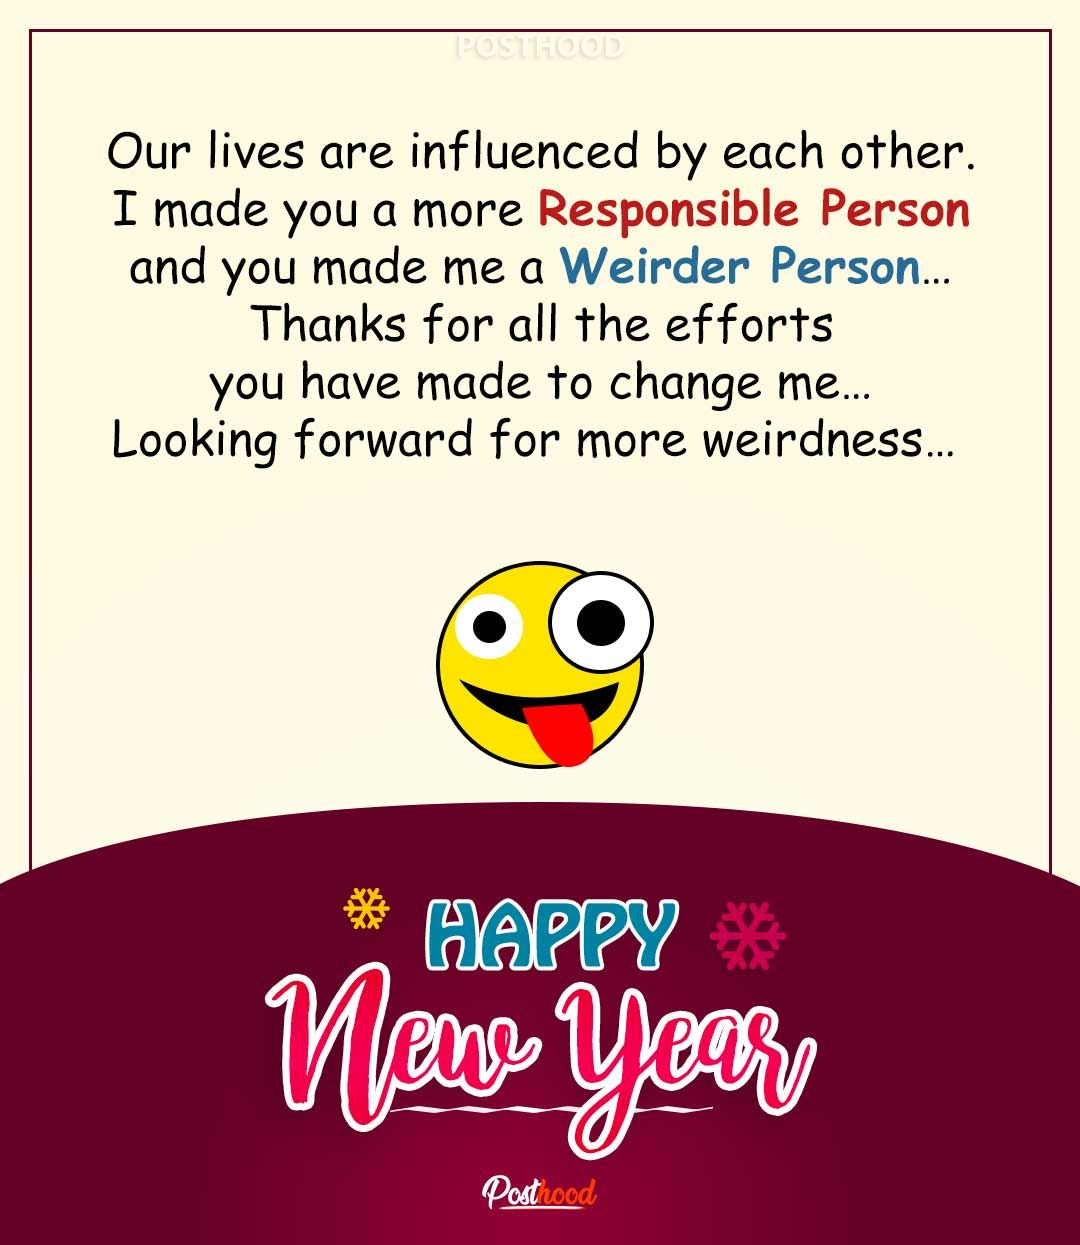 35 Hilarious And Funny New Year Wishes For Friends To Screw New Year Wishes Wishes For Friends Funny New Year